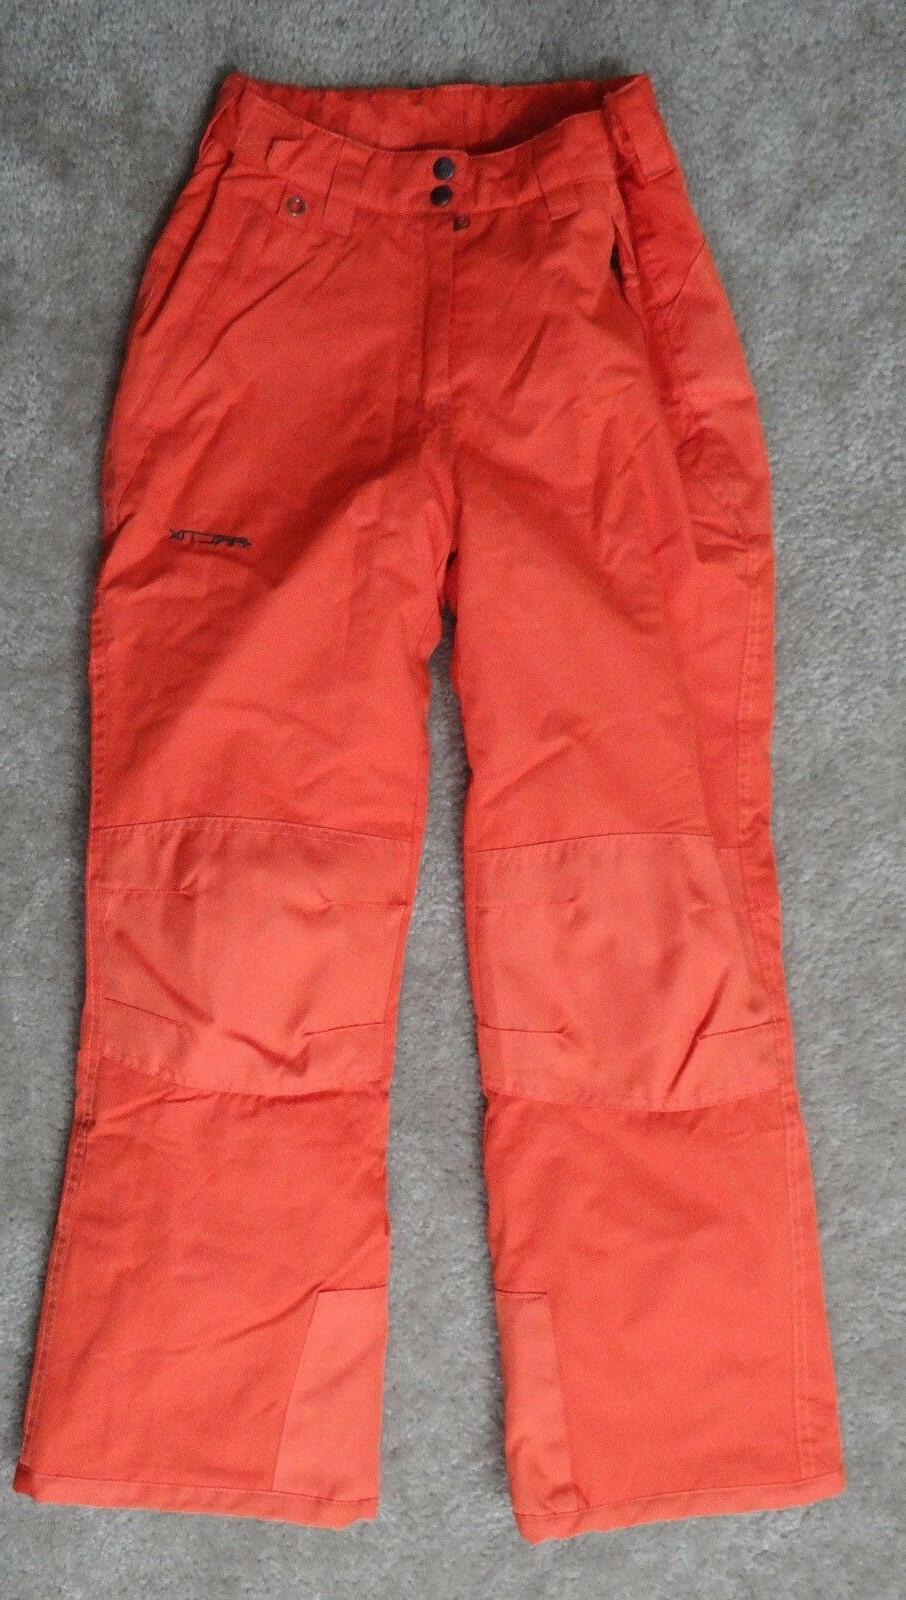 Arctix Youth orange Snow Pants with Reinforced Knees and Sea